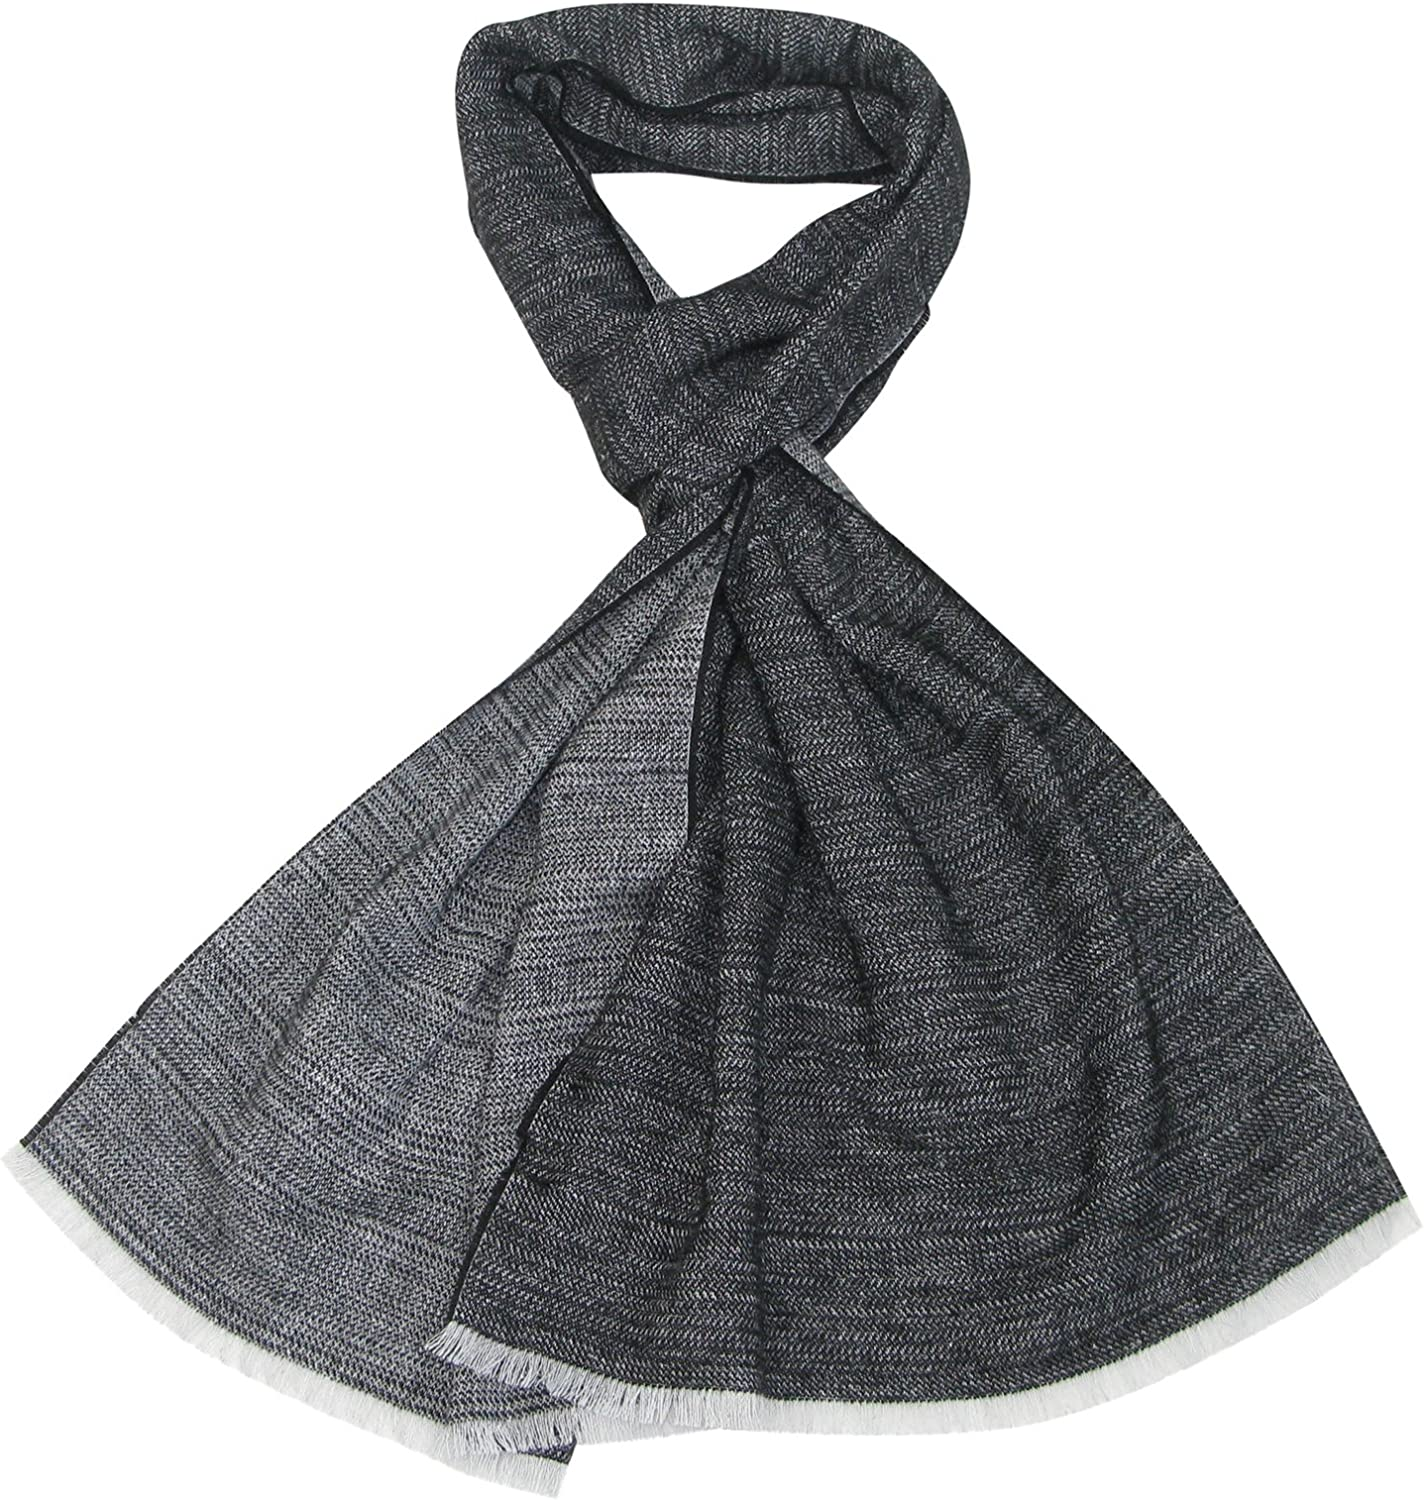 Made in Italy The Premier Quality Winter Scarf for Men Lovarzi Mens Scarf